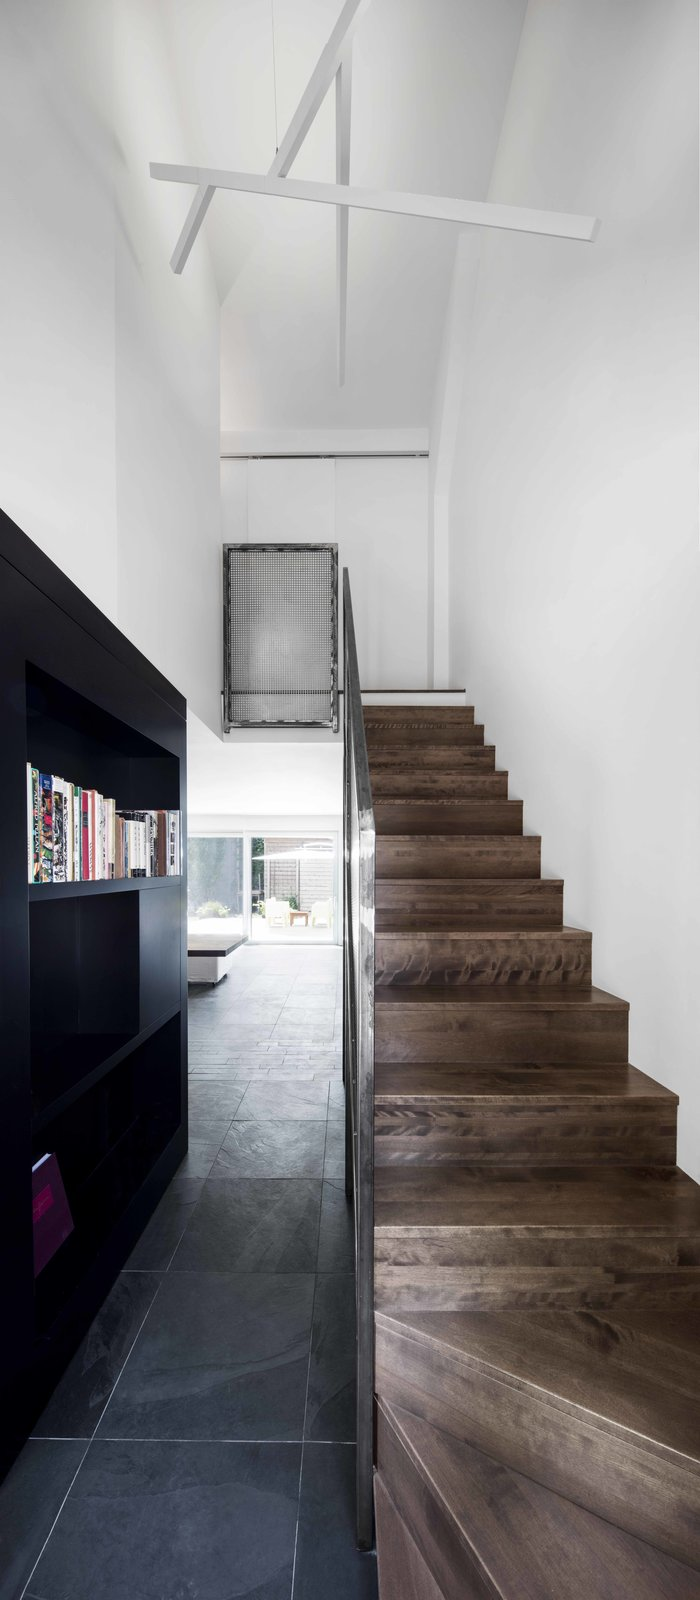 Staircase, Wood Tread, and Metal Railing The staircase's steel guardrail and the custom black bookshelf create a link between the kitchen, the living space, and the entryway.  Best Photos from A Monochromatic Renovation for a 19th-Century Montreal Home